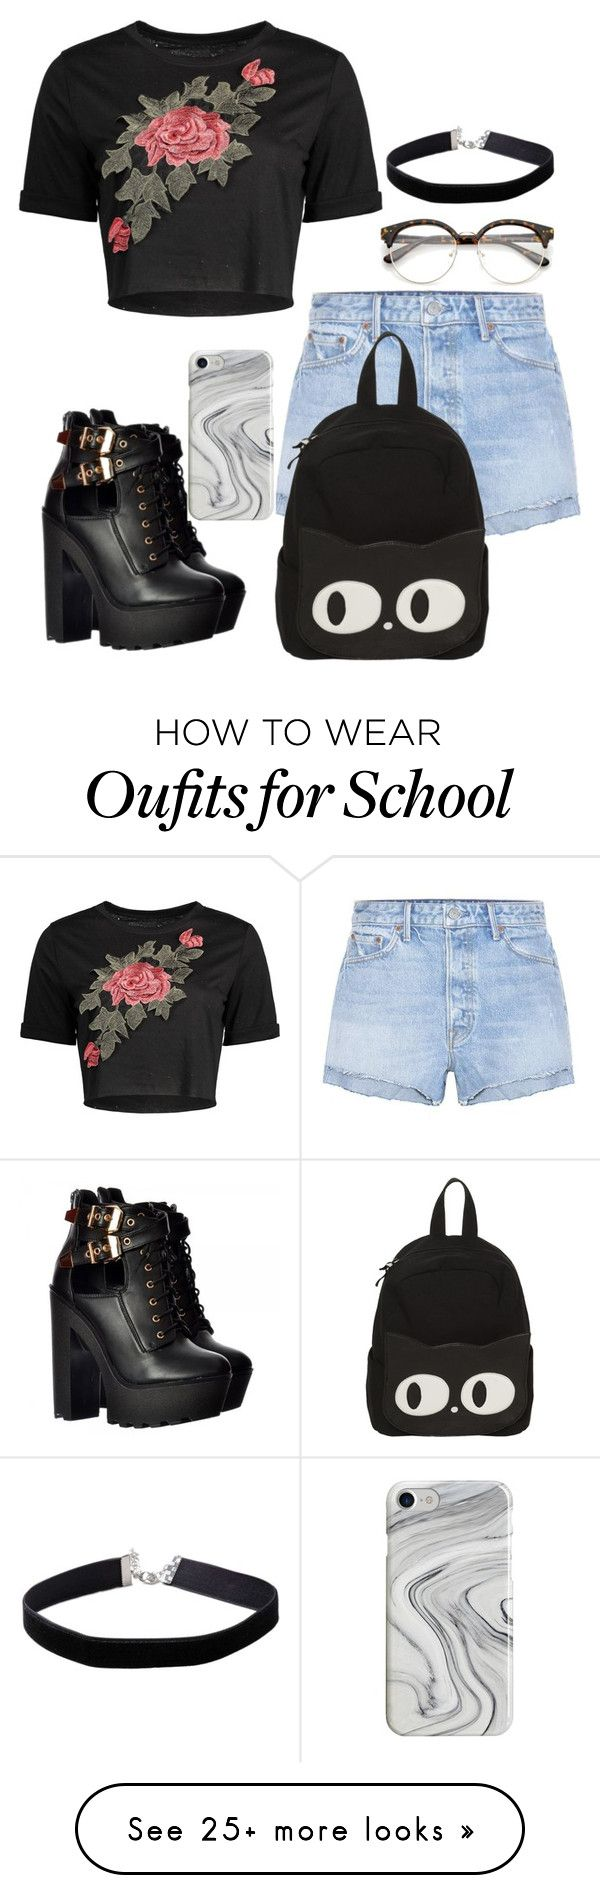 """Untitled #800"" by queenofllama on Polyvore featuring GRLFRND, Recover and Miss Selfridge"